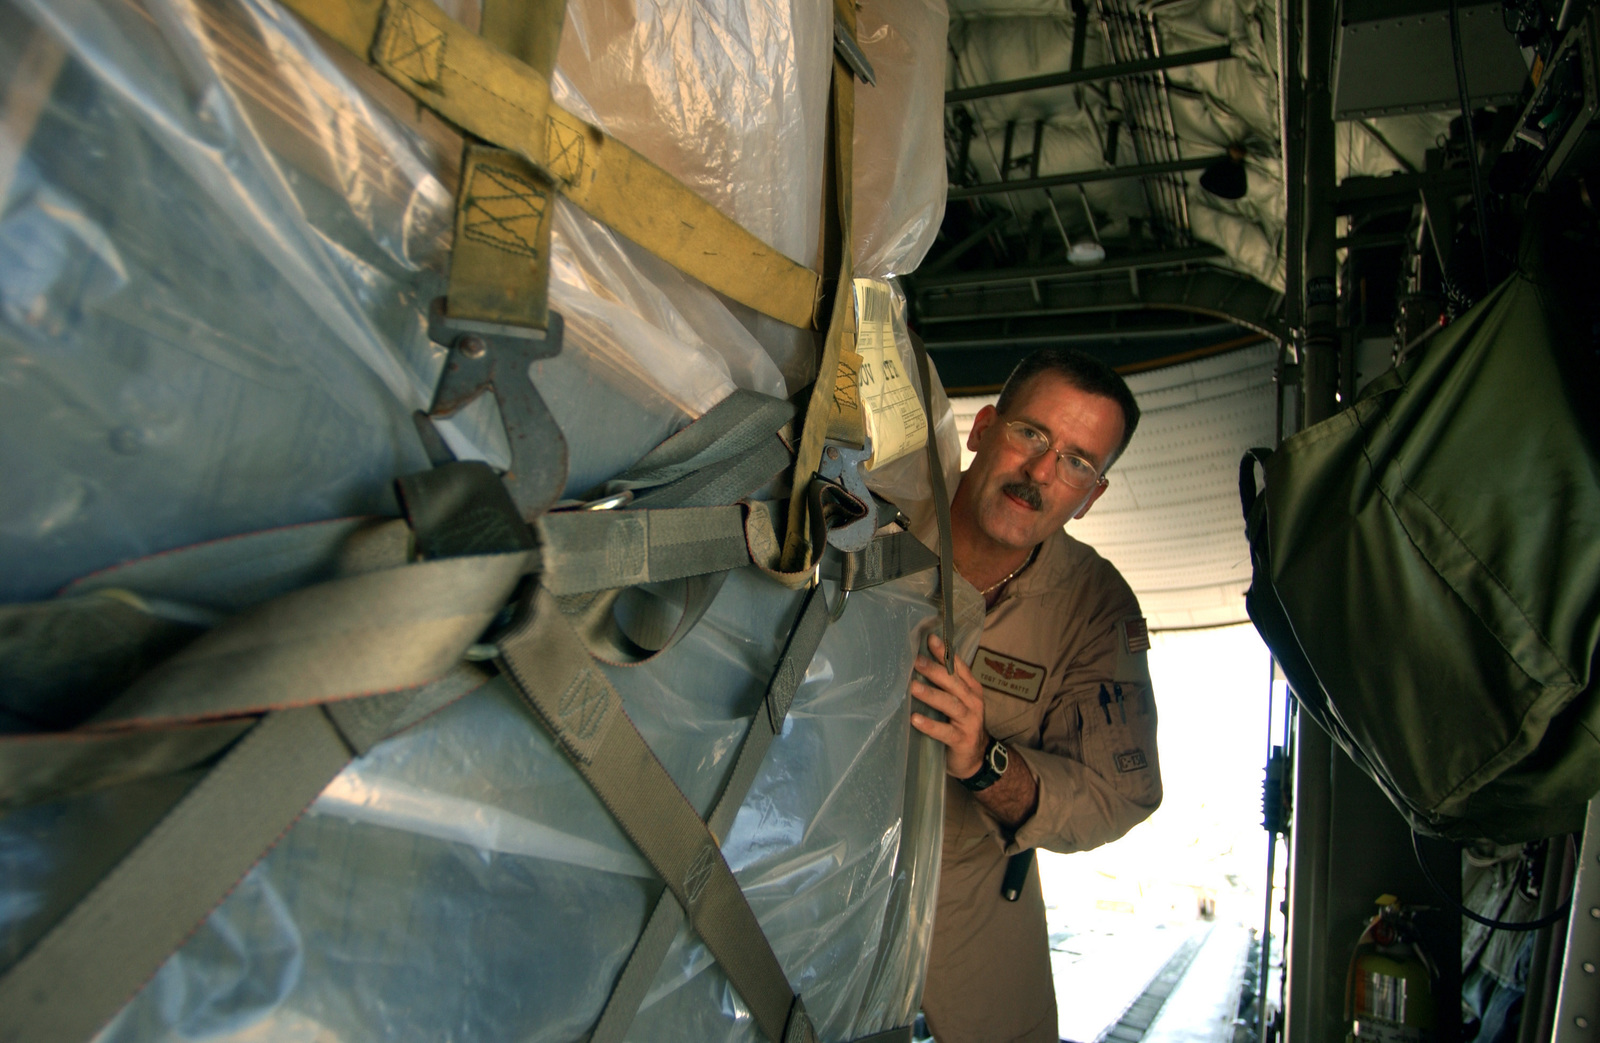 US Air Force (USAF) Technical Sergeant (TSGT) Tim Watts, a loadmaster from the Oklahoma City Air National Guard (ANG), loads cargo pallets onto a C-130 Hercules cargo aircraft in support of Operation ENDURING FREEDOM